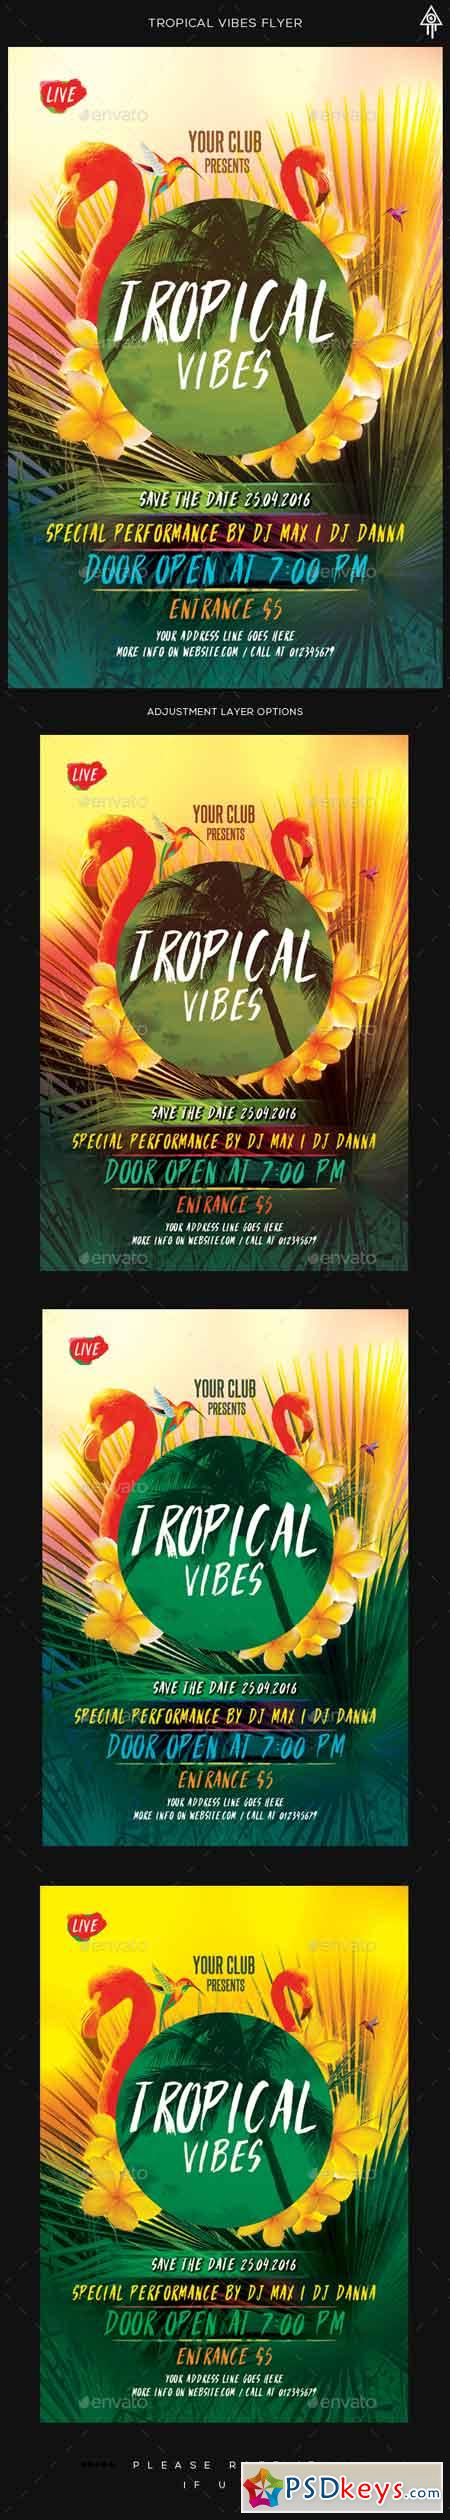 Tropical Vibes Flyer 16389121